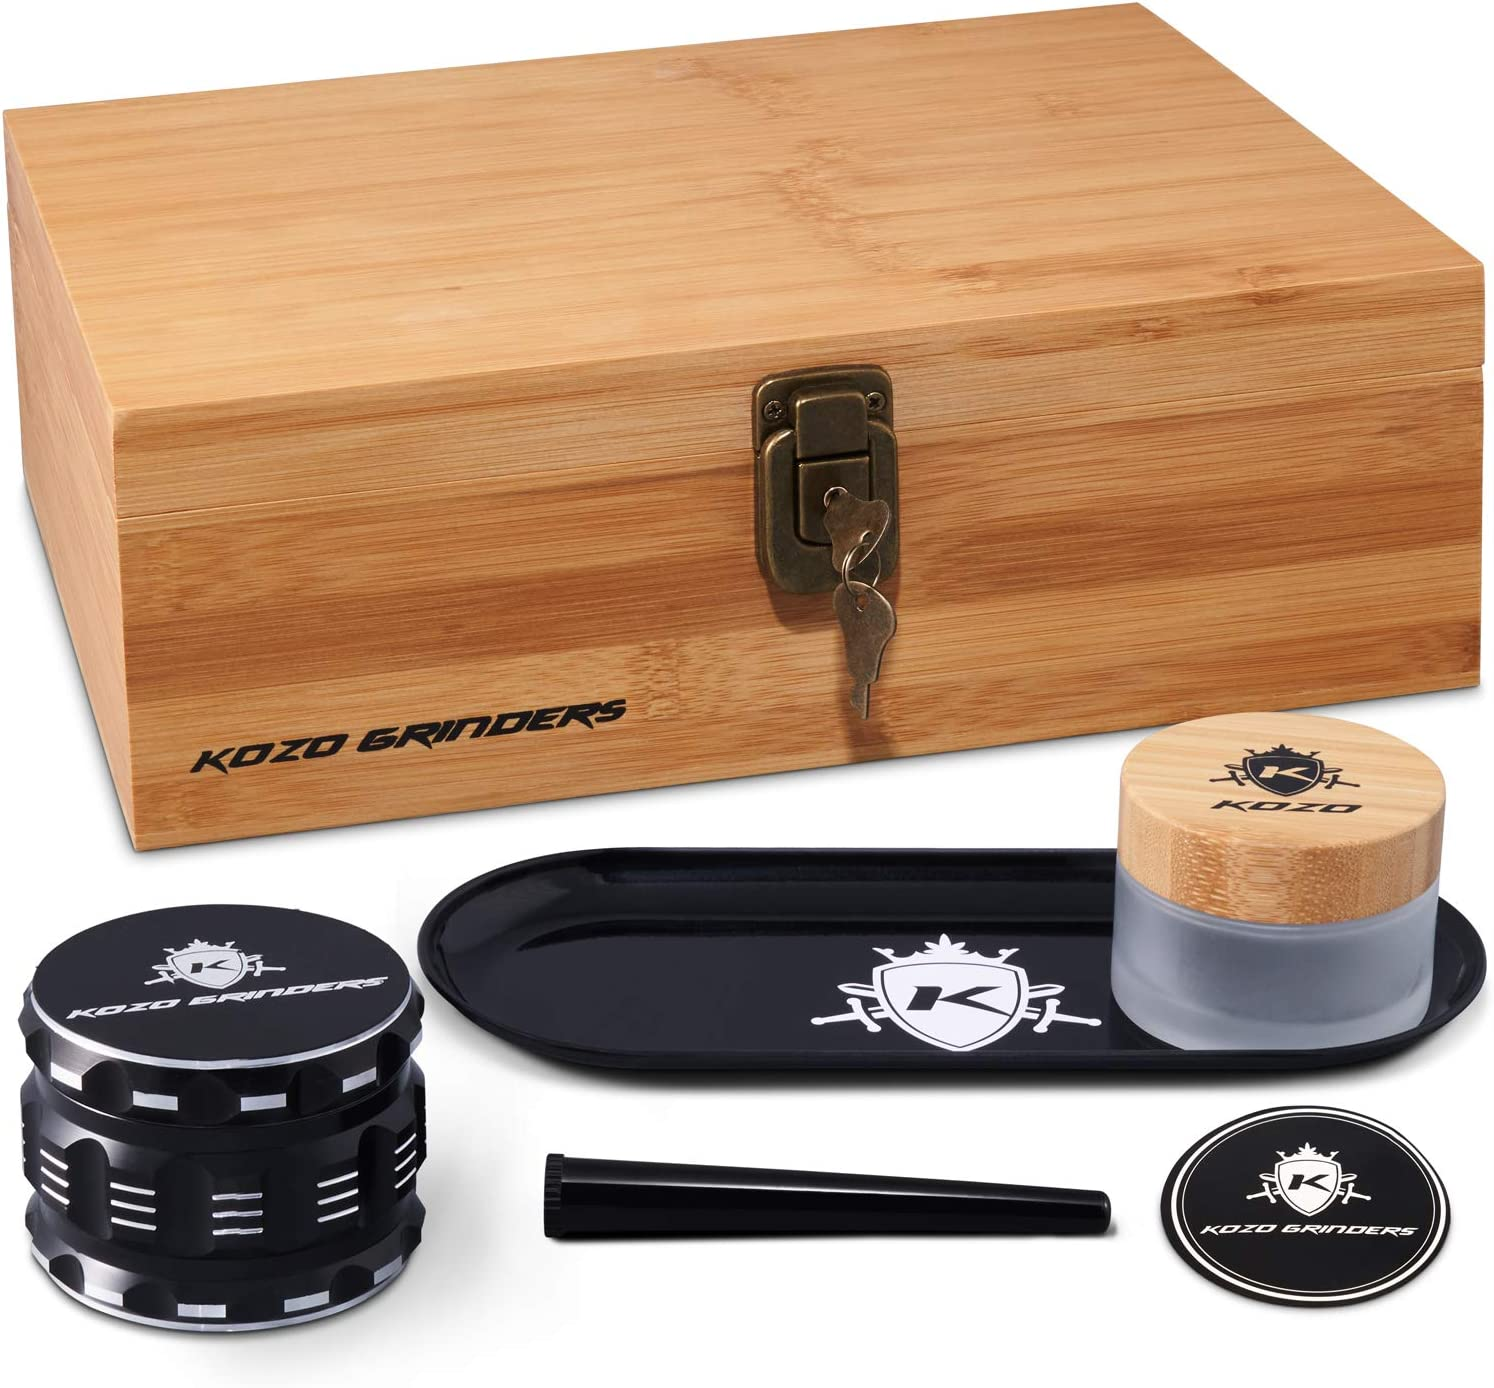 Kozo XL Wood Stash Box Kit with Rolling Tray, Locking Smell Proof Jar with Airtight Seal, Aluminium 4 Part Herb Grinder (Large-Wooden-Hinges)